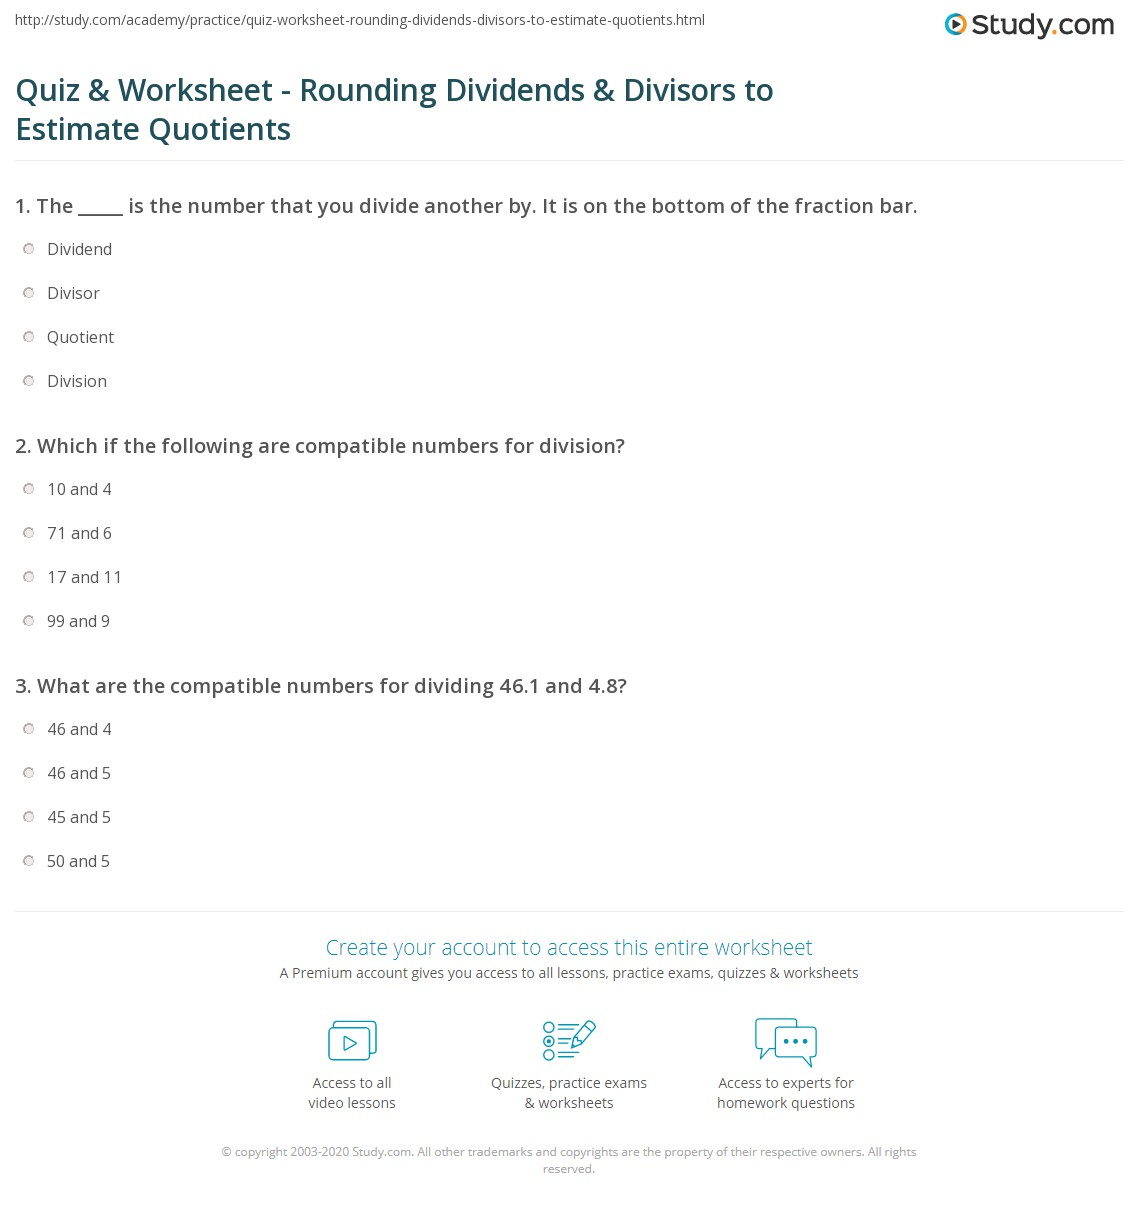 Uncategorized Compatible Numbers Worksheet quiz worksheet rounding dividends divisors to estimate which if the following are compatible numbers for division